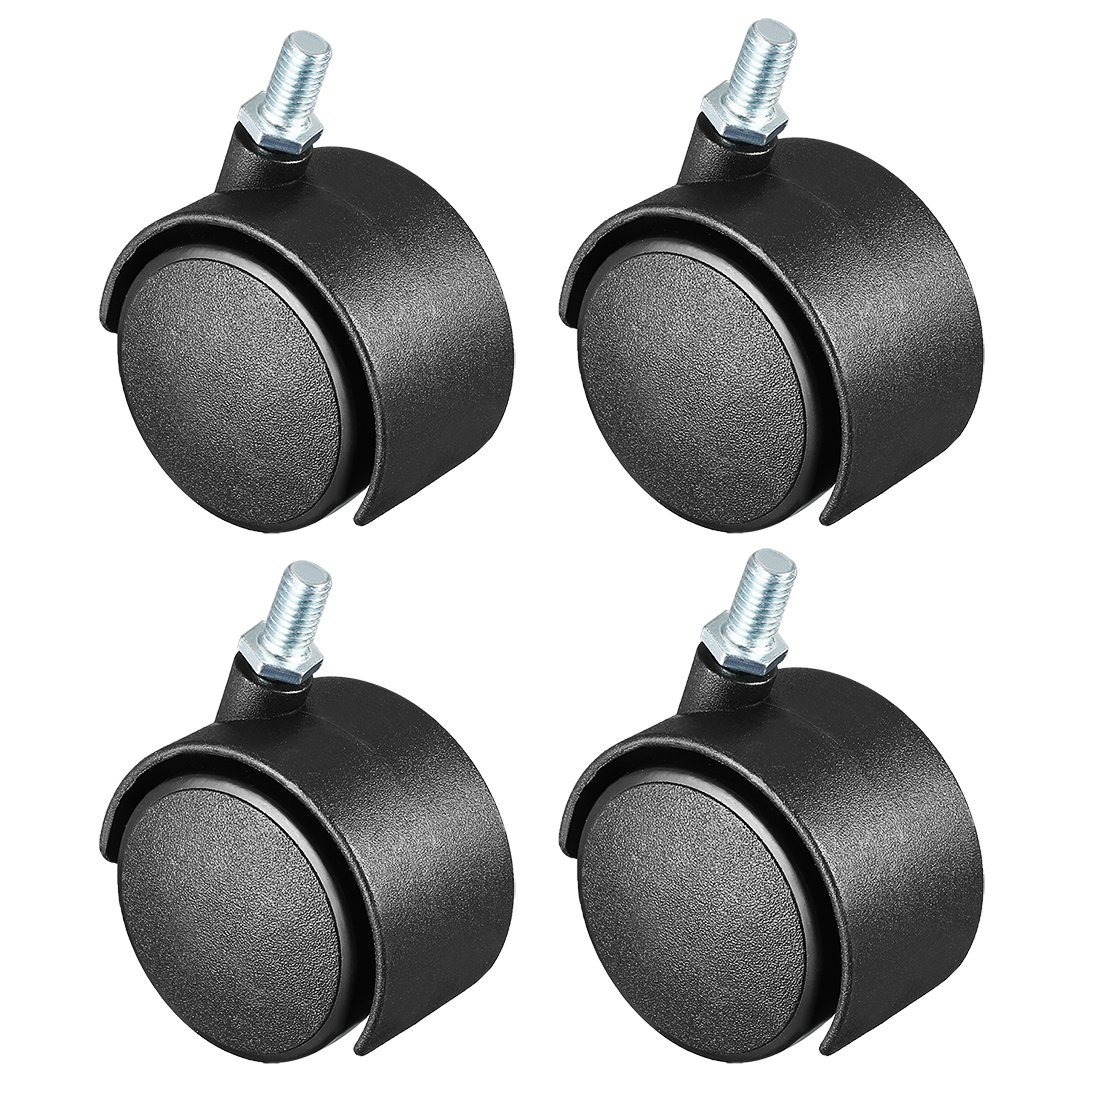 sourcing map 4 Pcs 2 Inch Swivel Caster Wheels Nylon 360 Degree Threaded Stem Caster Wheel, M8 x 13mm, 39lb Capacity a18042600ux0211